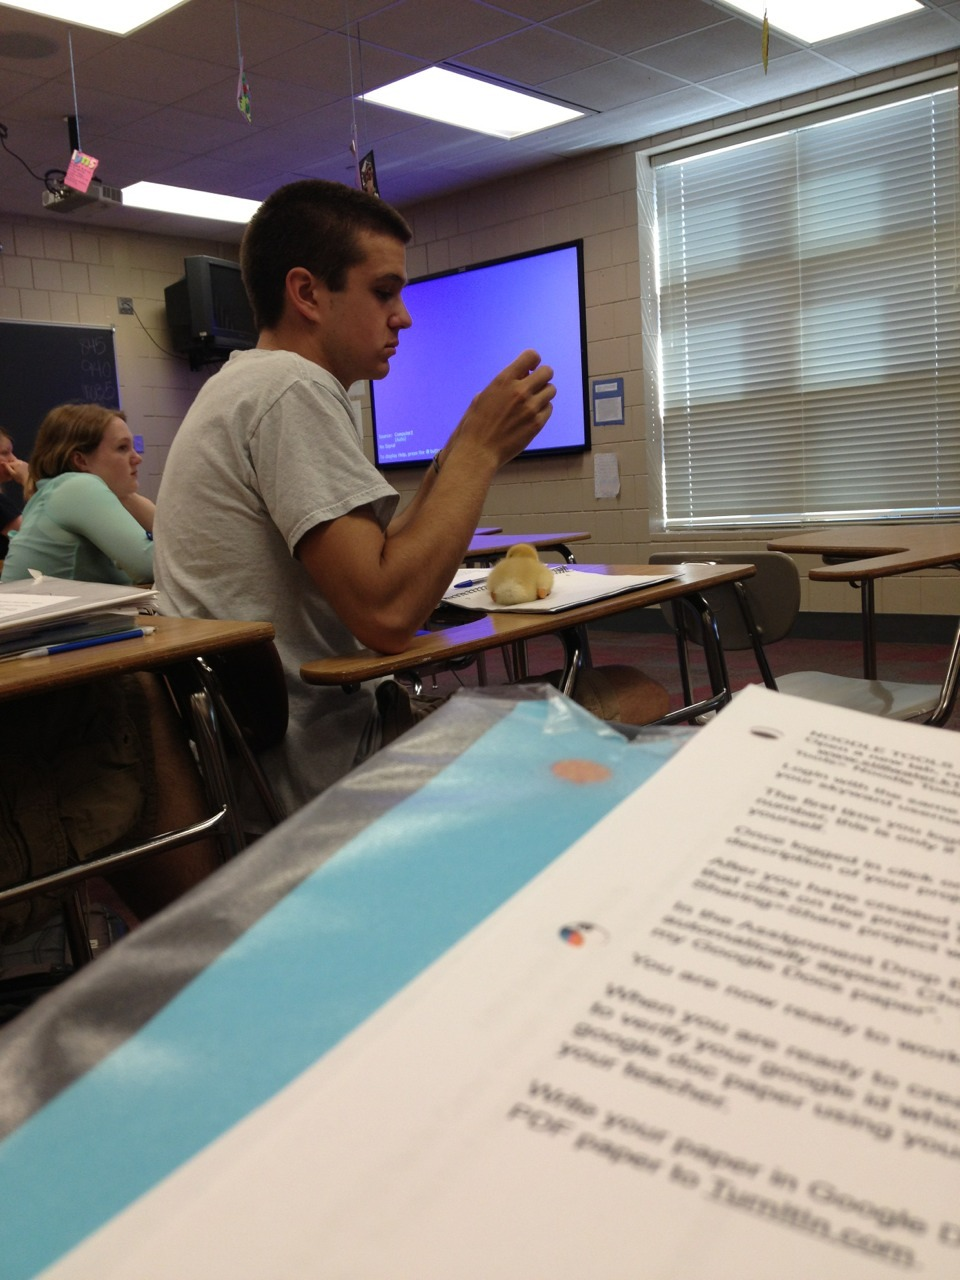 typette:  teenytigress:  SO THIS GUY IN MY ENGLISH IS DOING A PROJECT FOR BIO WHERE HE GETS A DUCKLING TO IMPRINT ON HIM SO HE JUST CARRIES IT AROUND WITH HIM TO ALL OF HIS CLASSES AND I SWEAR THIS DUCK IS THE MOST WELL BEHAVED FUCKING POULTRY IVE EVER SEEN IT JUST SITS ON HIS DESK QUIETLY AND SOMETIMES HE PUTS IT IN HIS POCKET AND IT JUST SLEEPS LIKE WOW YOU GO DUCKY  AAAWWWW holycrap that's fucking adorable, look at it, it's like a little yellow blob of cute